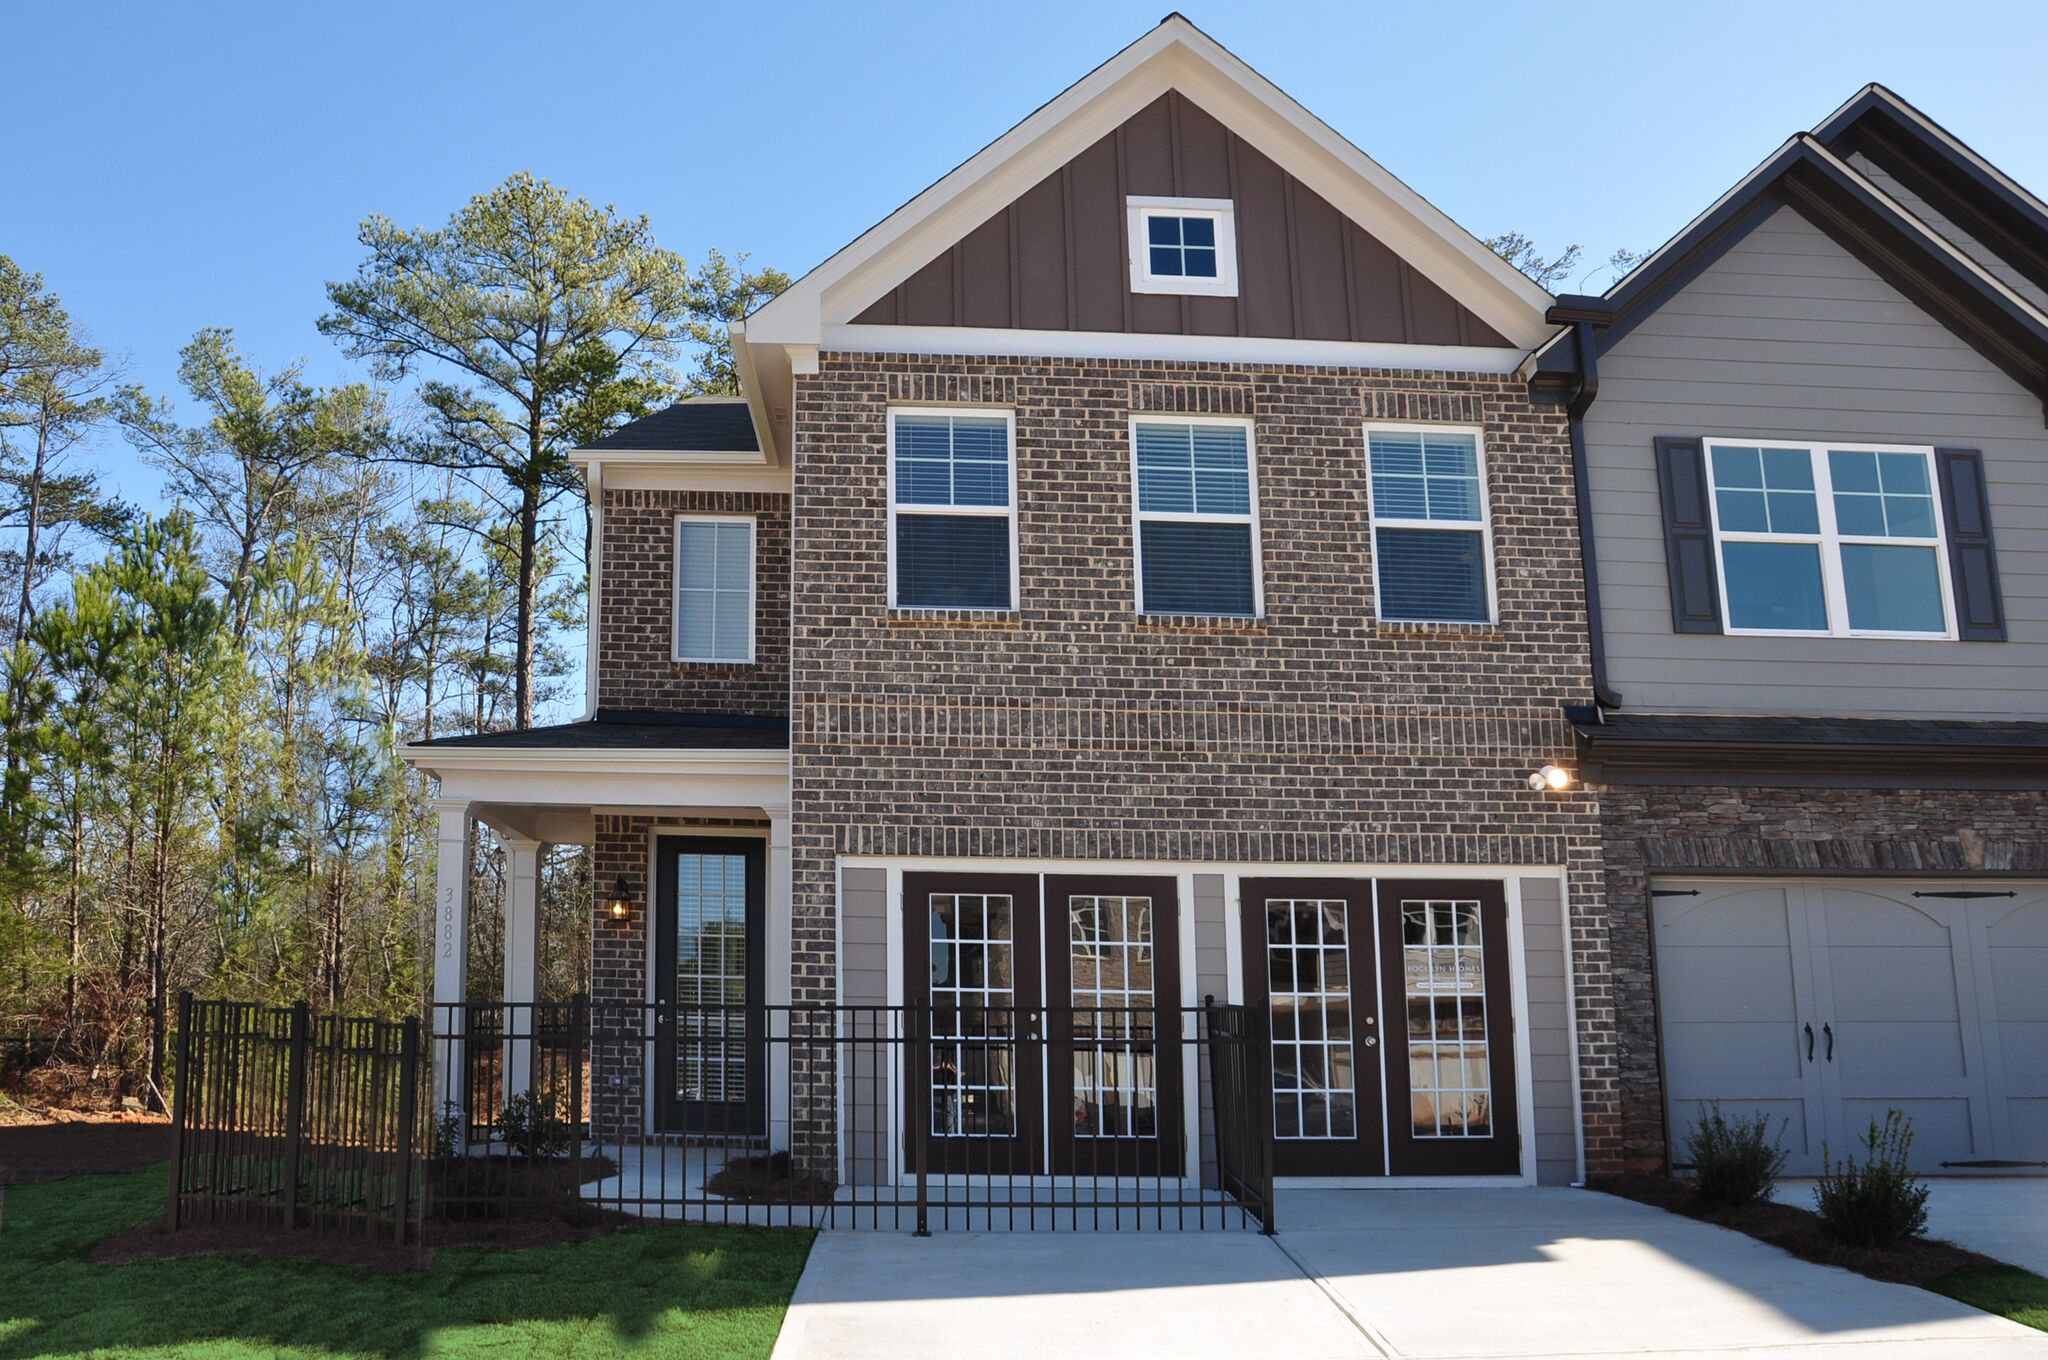 Now Touring in 3D - The Dobbins at Keystone Gates! - Rocklyn Homes